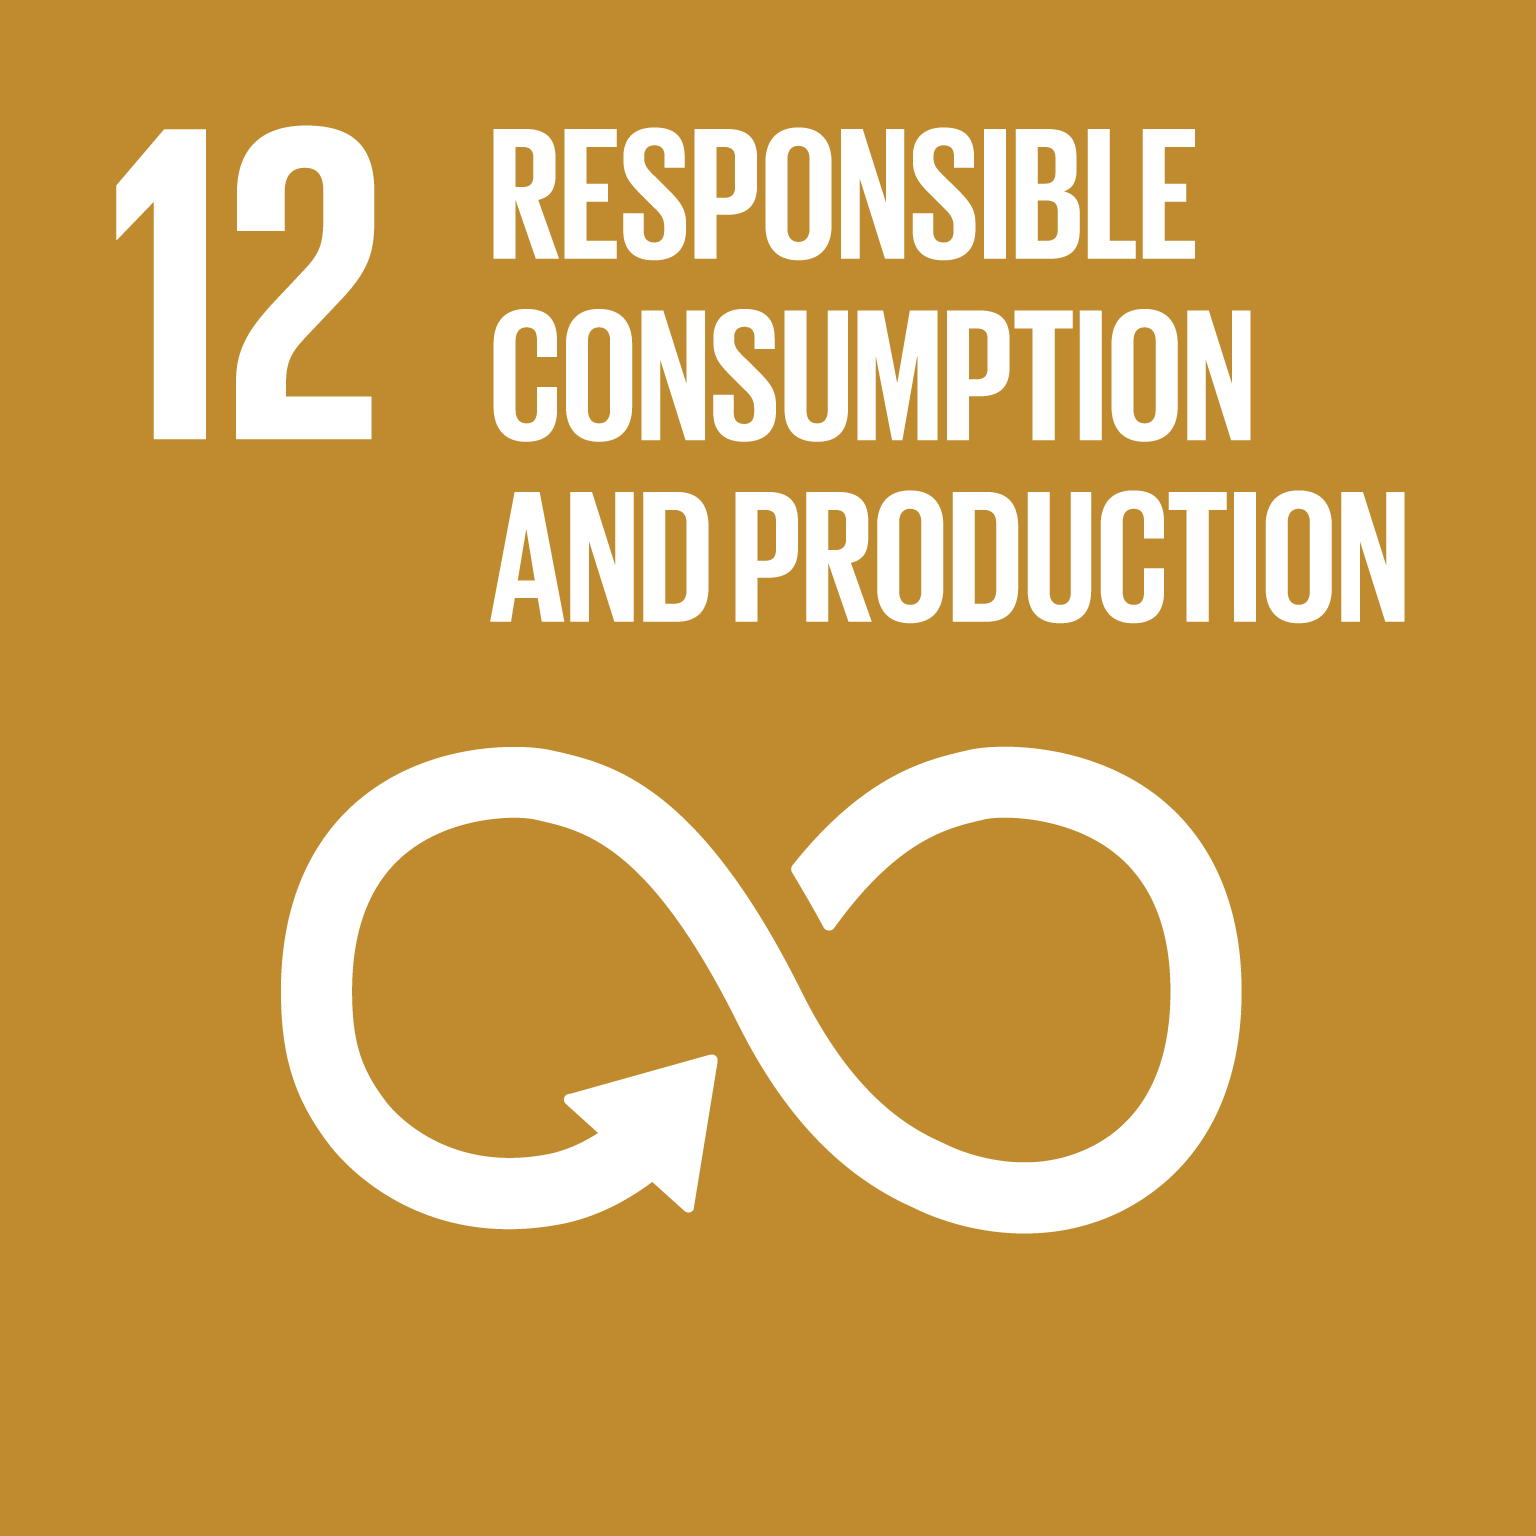 sdg icon #12 RESPONSIBLE CONSUMPTION & PRODUCTION